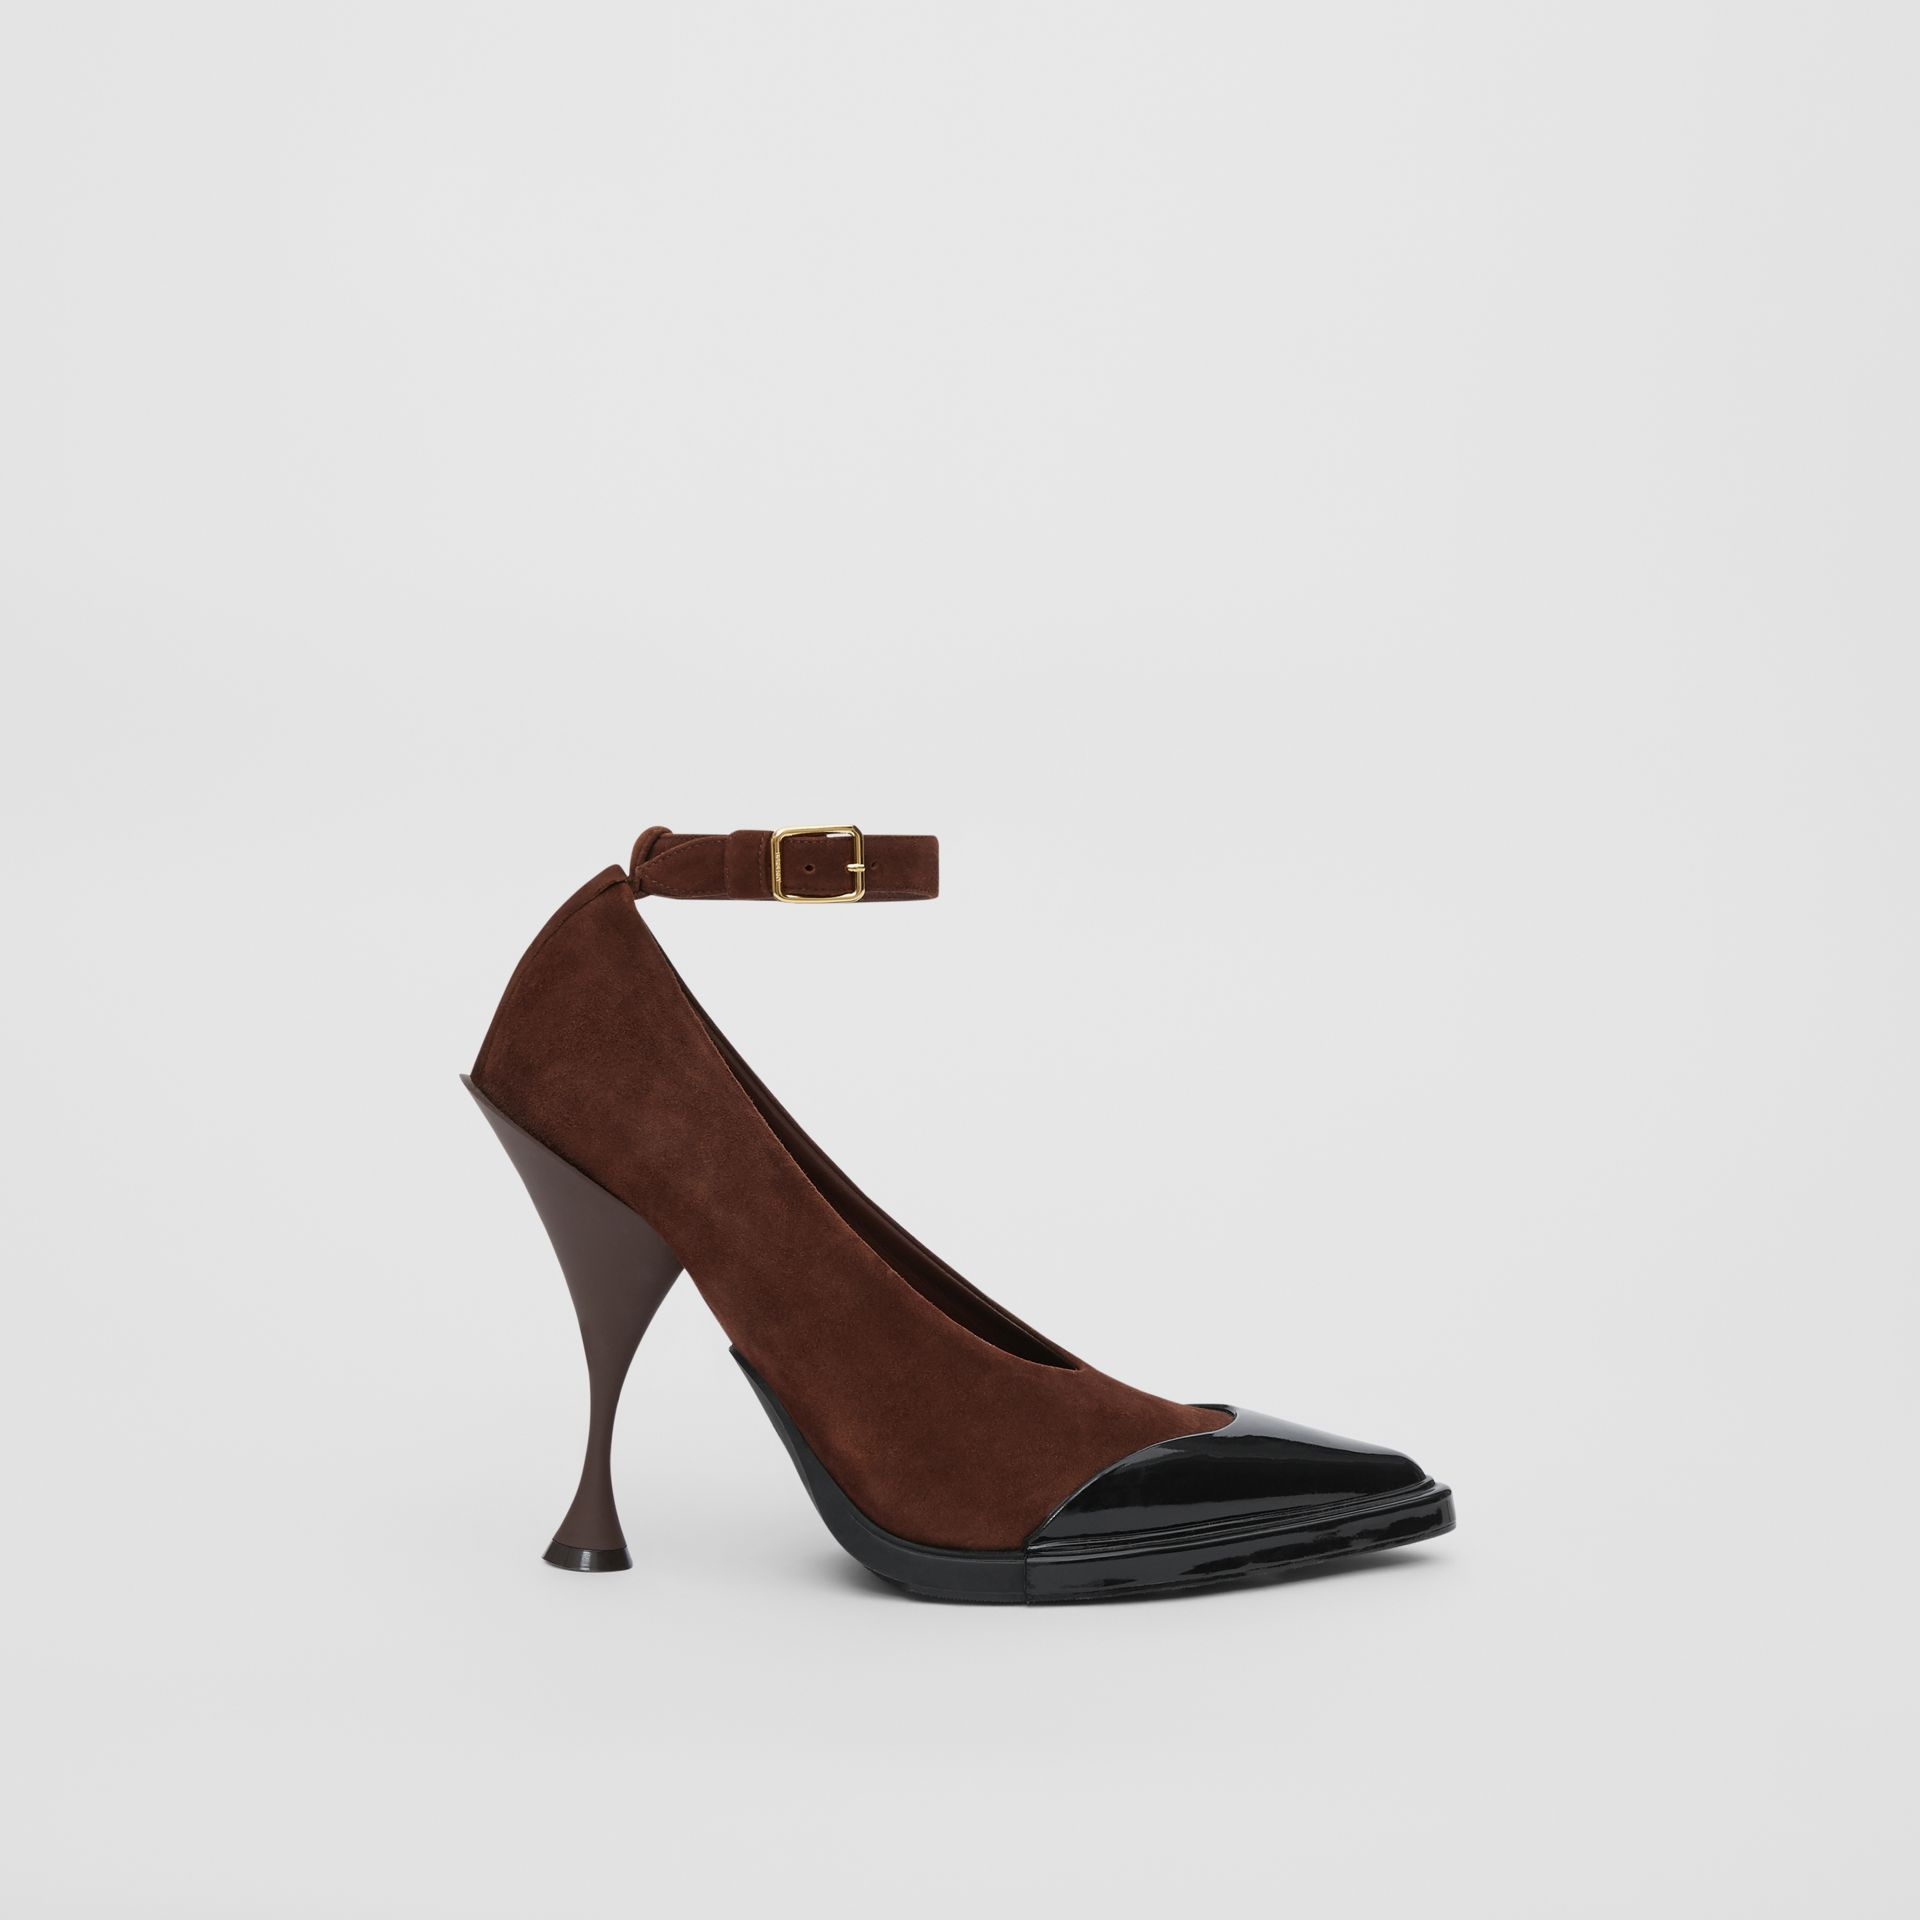 Toe Cap Detail Leather Point-toe Pumps in Dark Mocha - Women | Burberry United Kingdom - gallery image 5